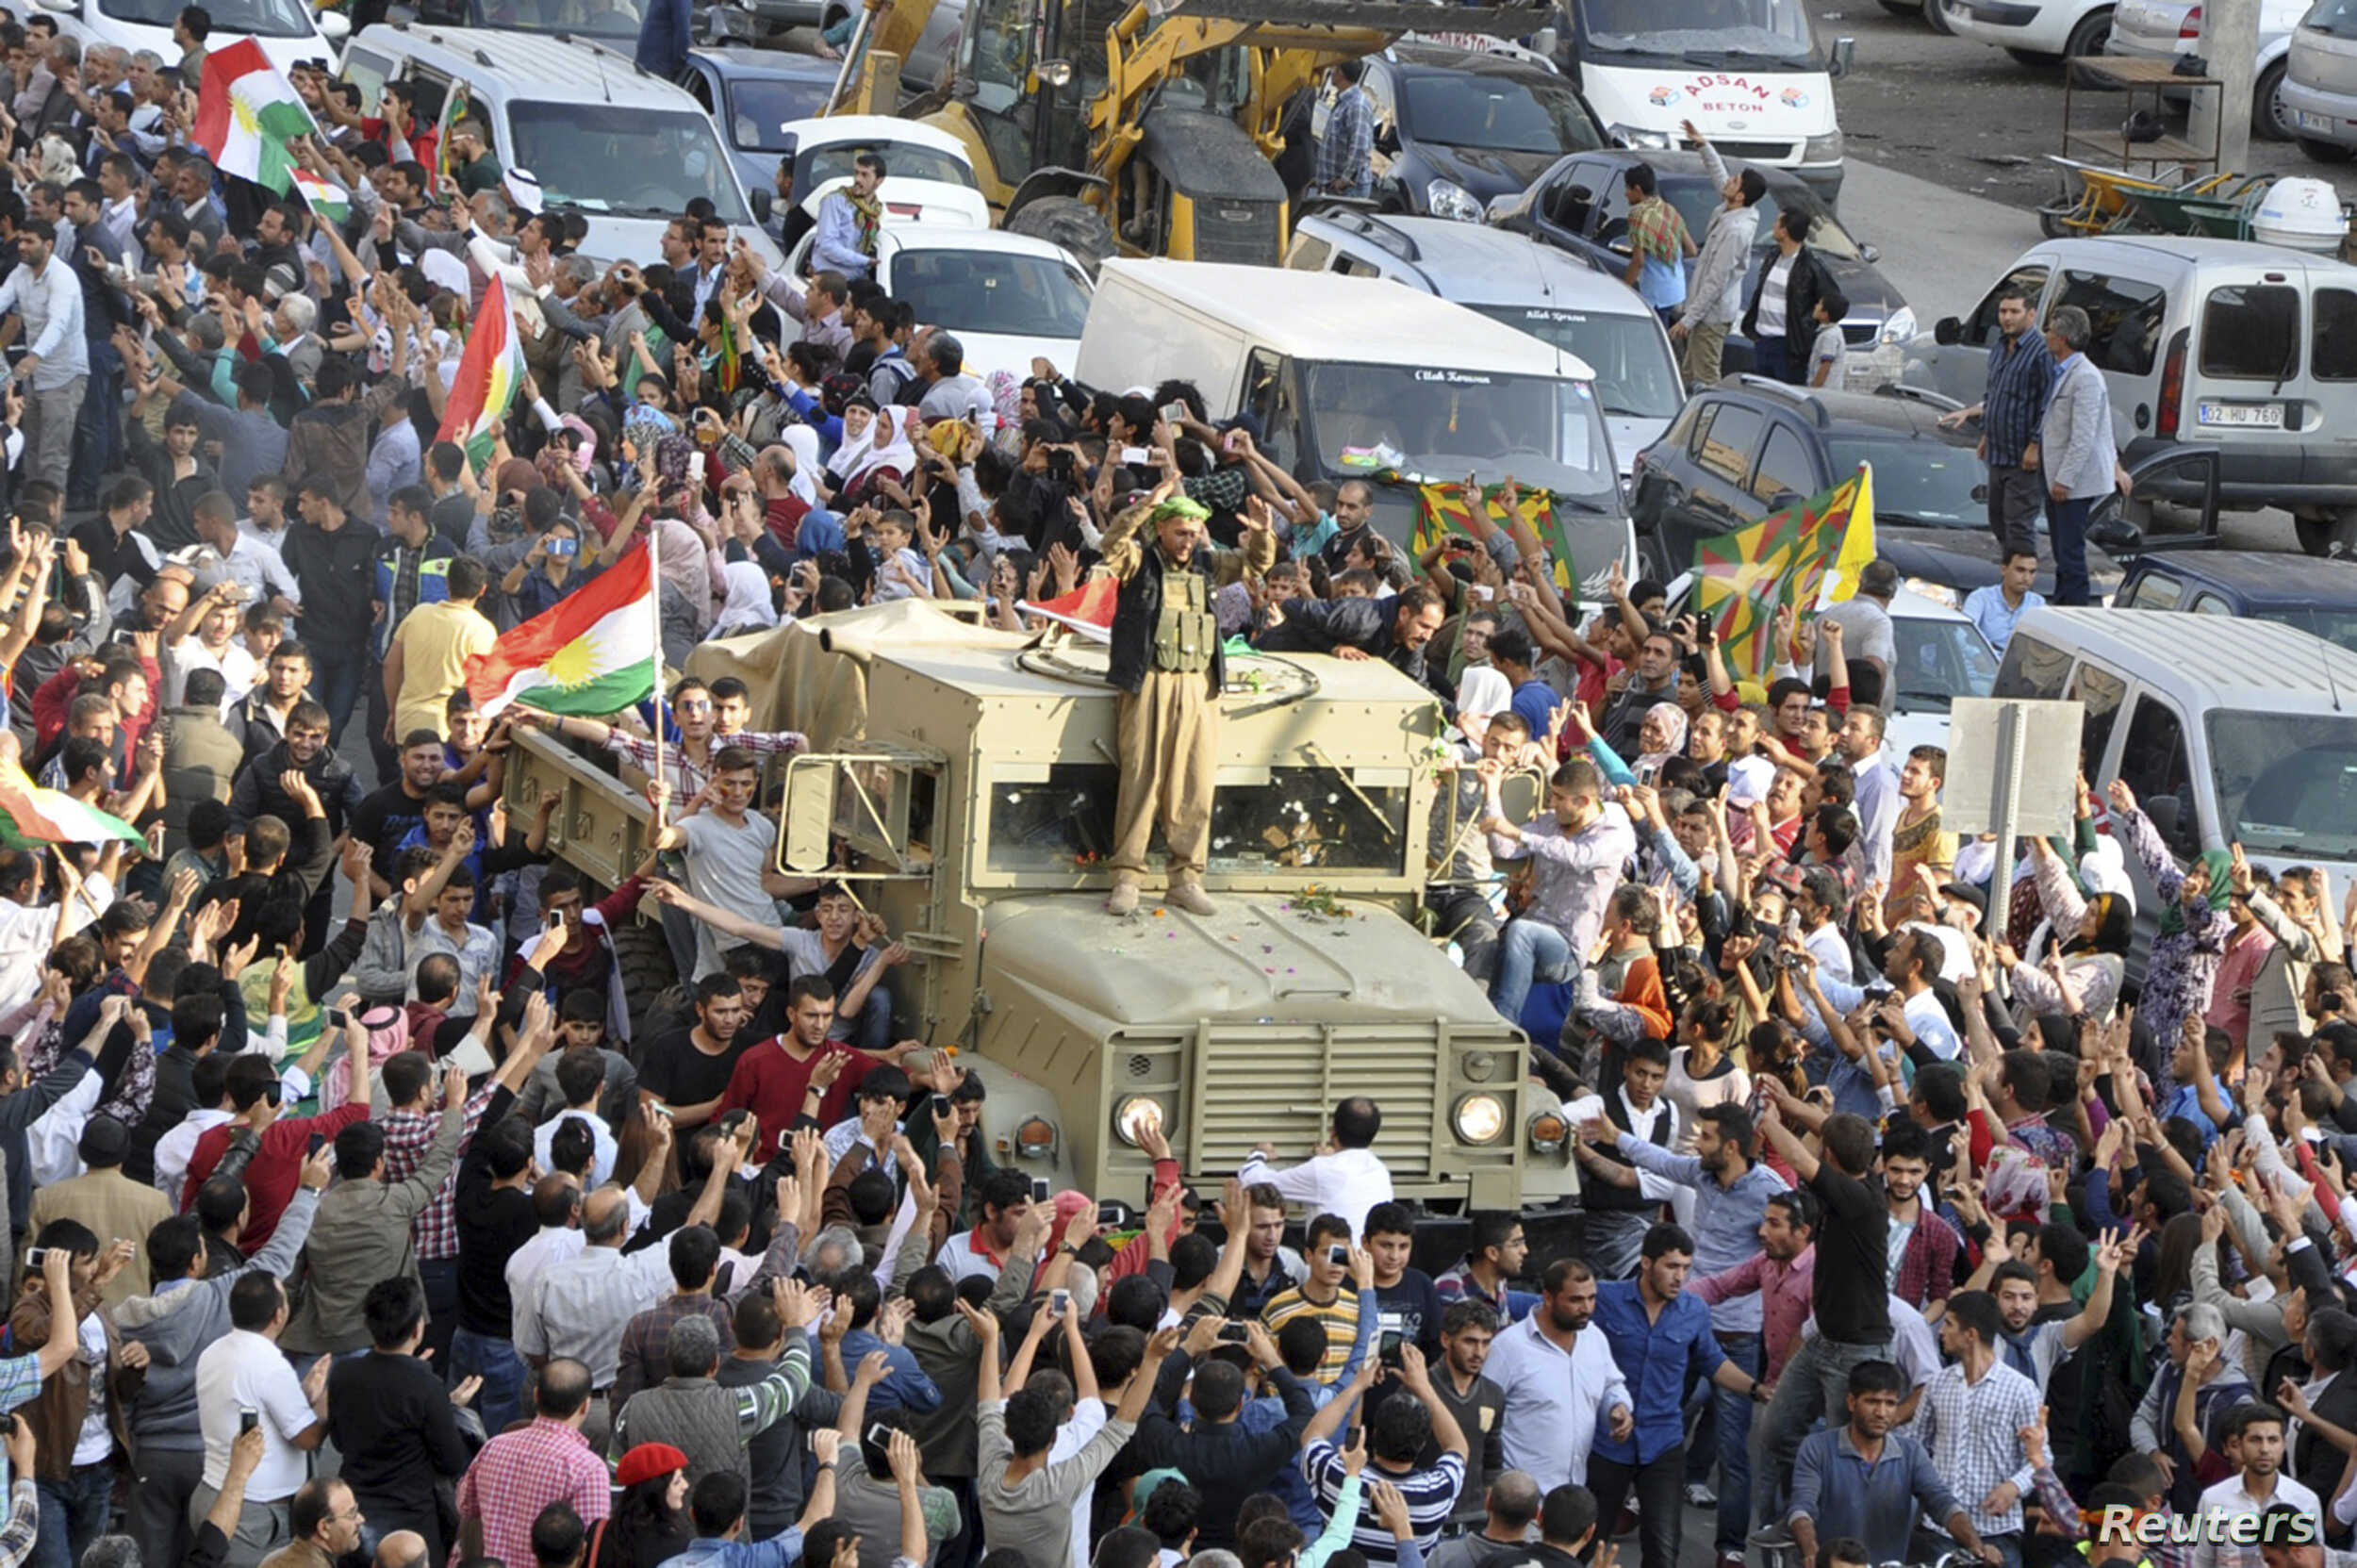 Convoy of peshmerga vehicles is escorted by Turkish Kurds on their way to the Turkish-Syrian border, in Kiziltepe, near the southeastern city of Mardin, Oct. 29, 2014.